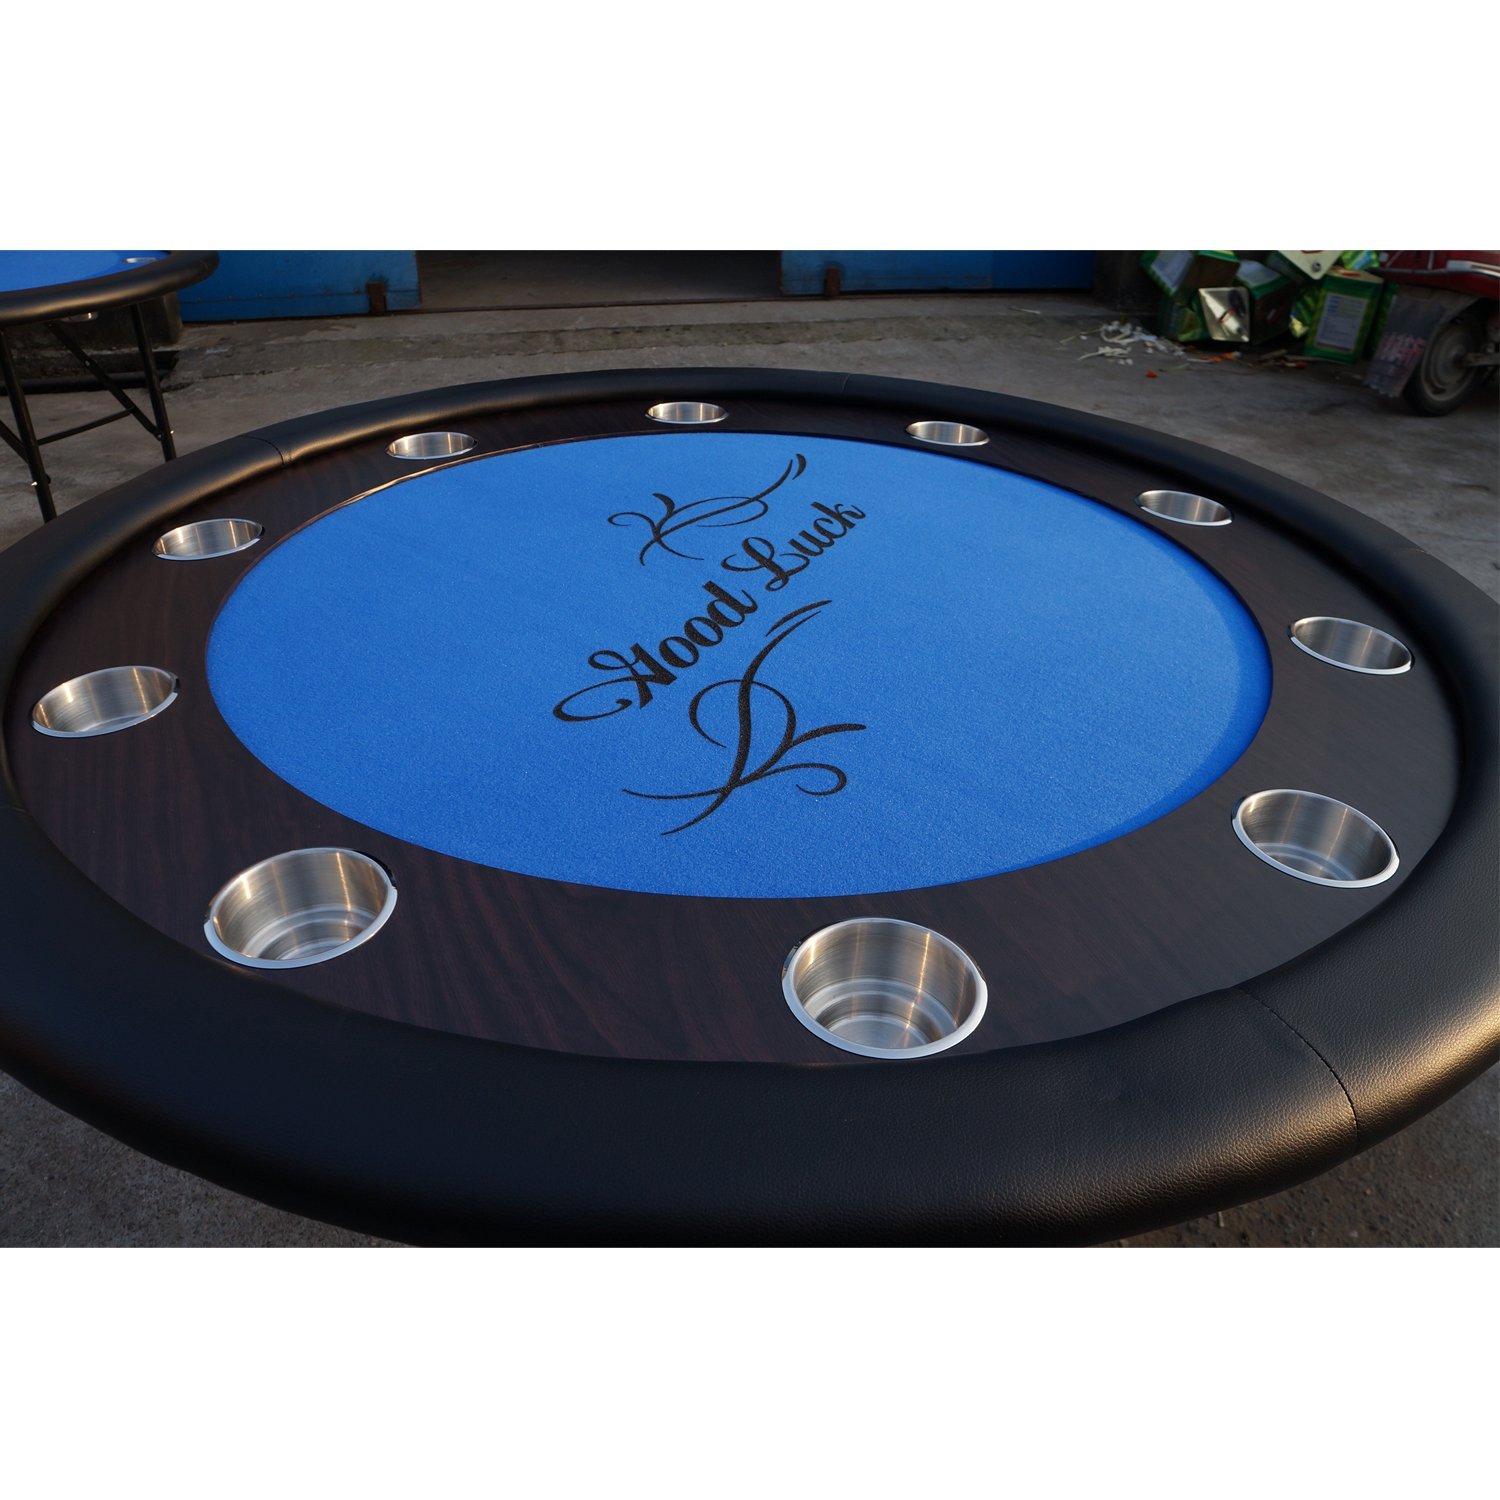 YH Poker Dual Size Stainless Steel Poker Table Cup Holders